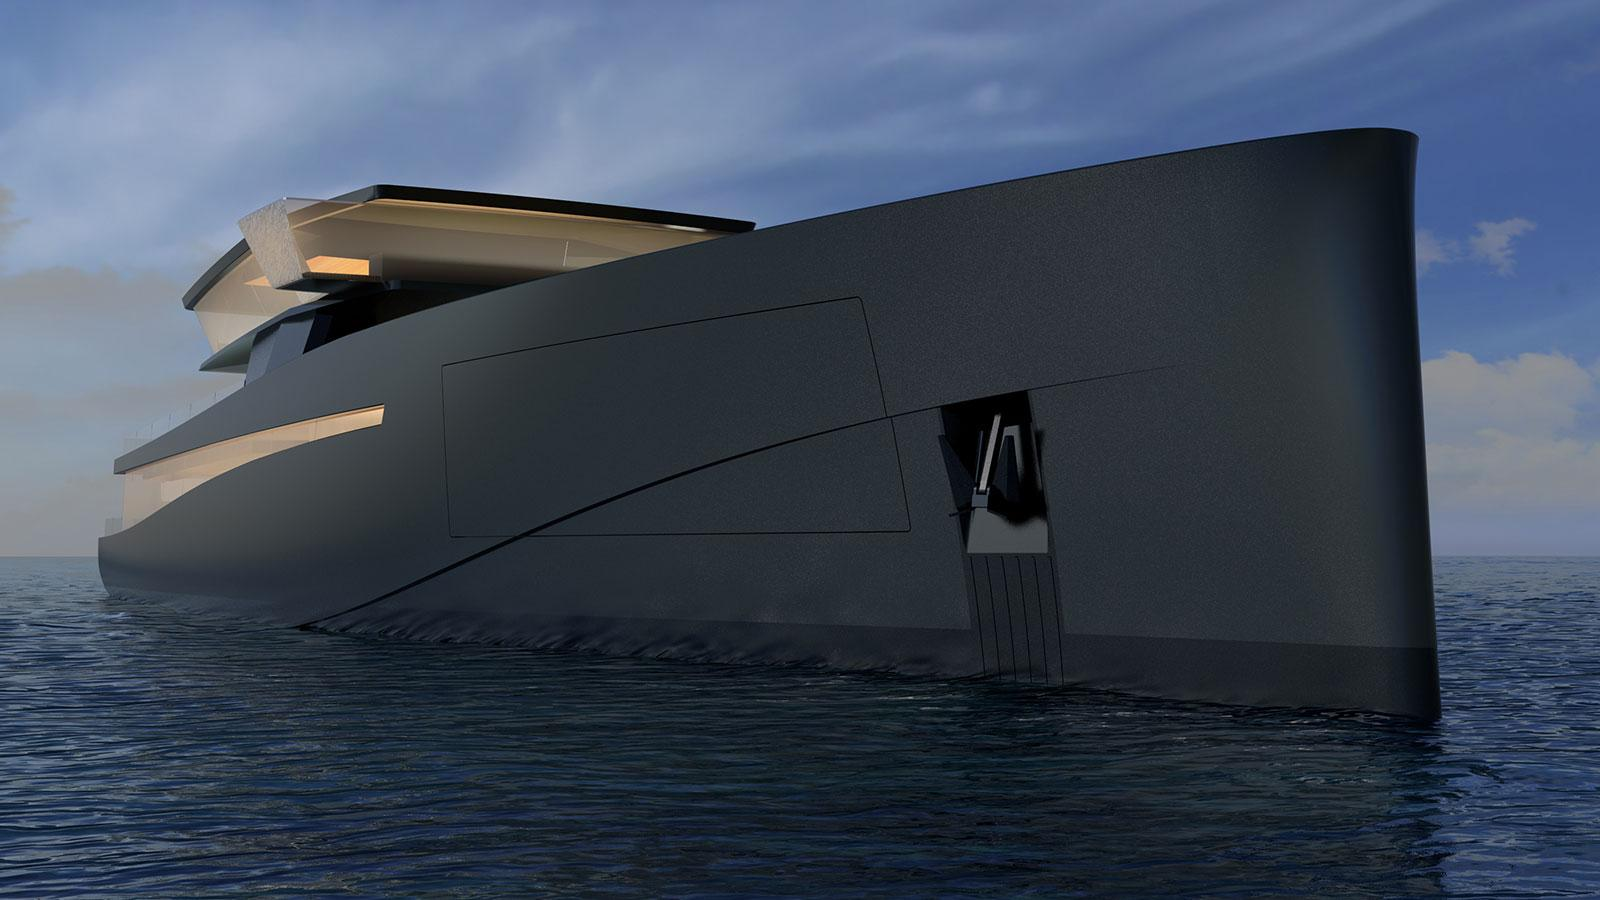 Wally teams up with Nobiskrug for 83m superyacht explorer concept